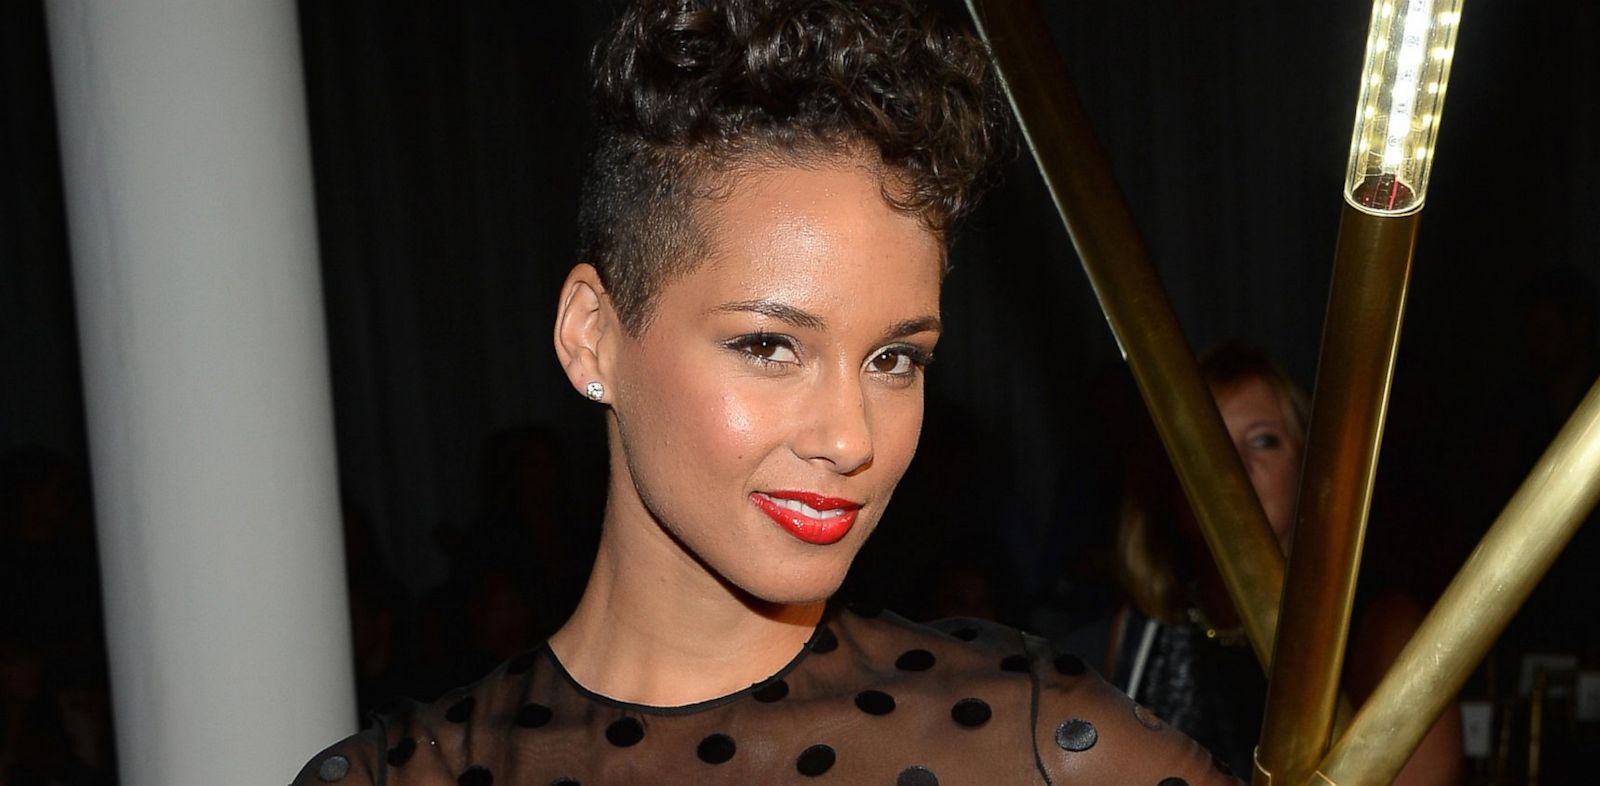 PHOTO: Alicia Keys attends the Jason Wu Spring 2014 fashion show, Sept. 6, 2013, in New York City.